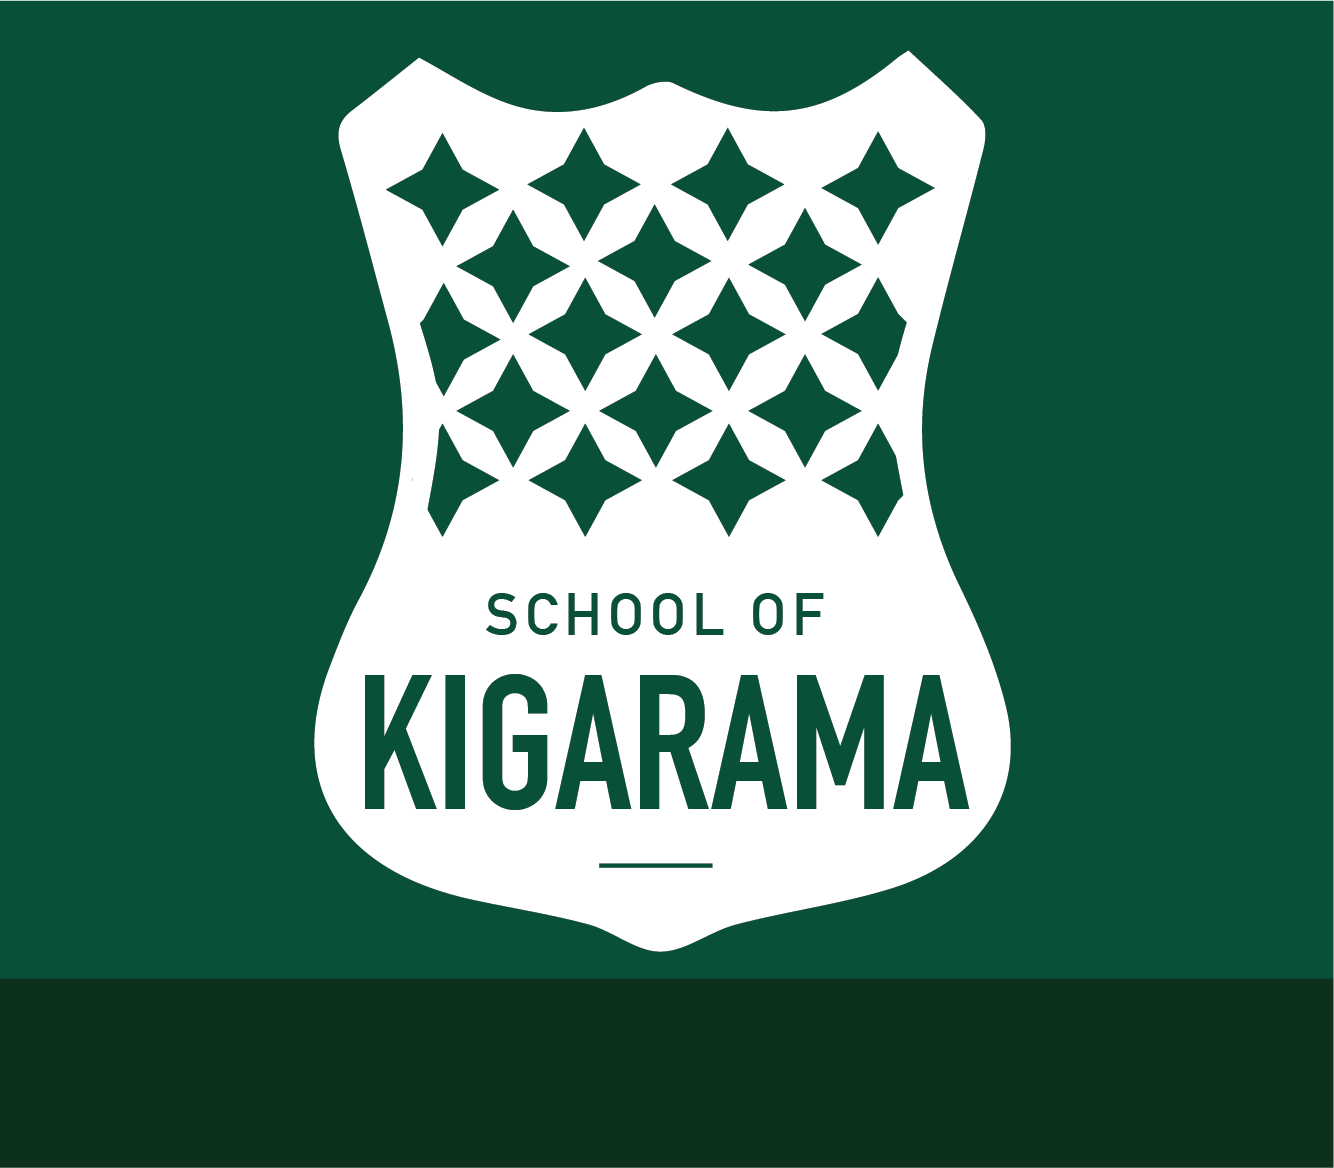 School of kigarama